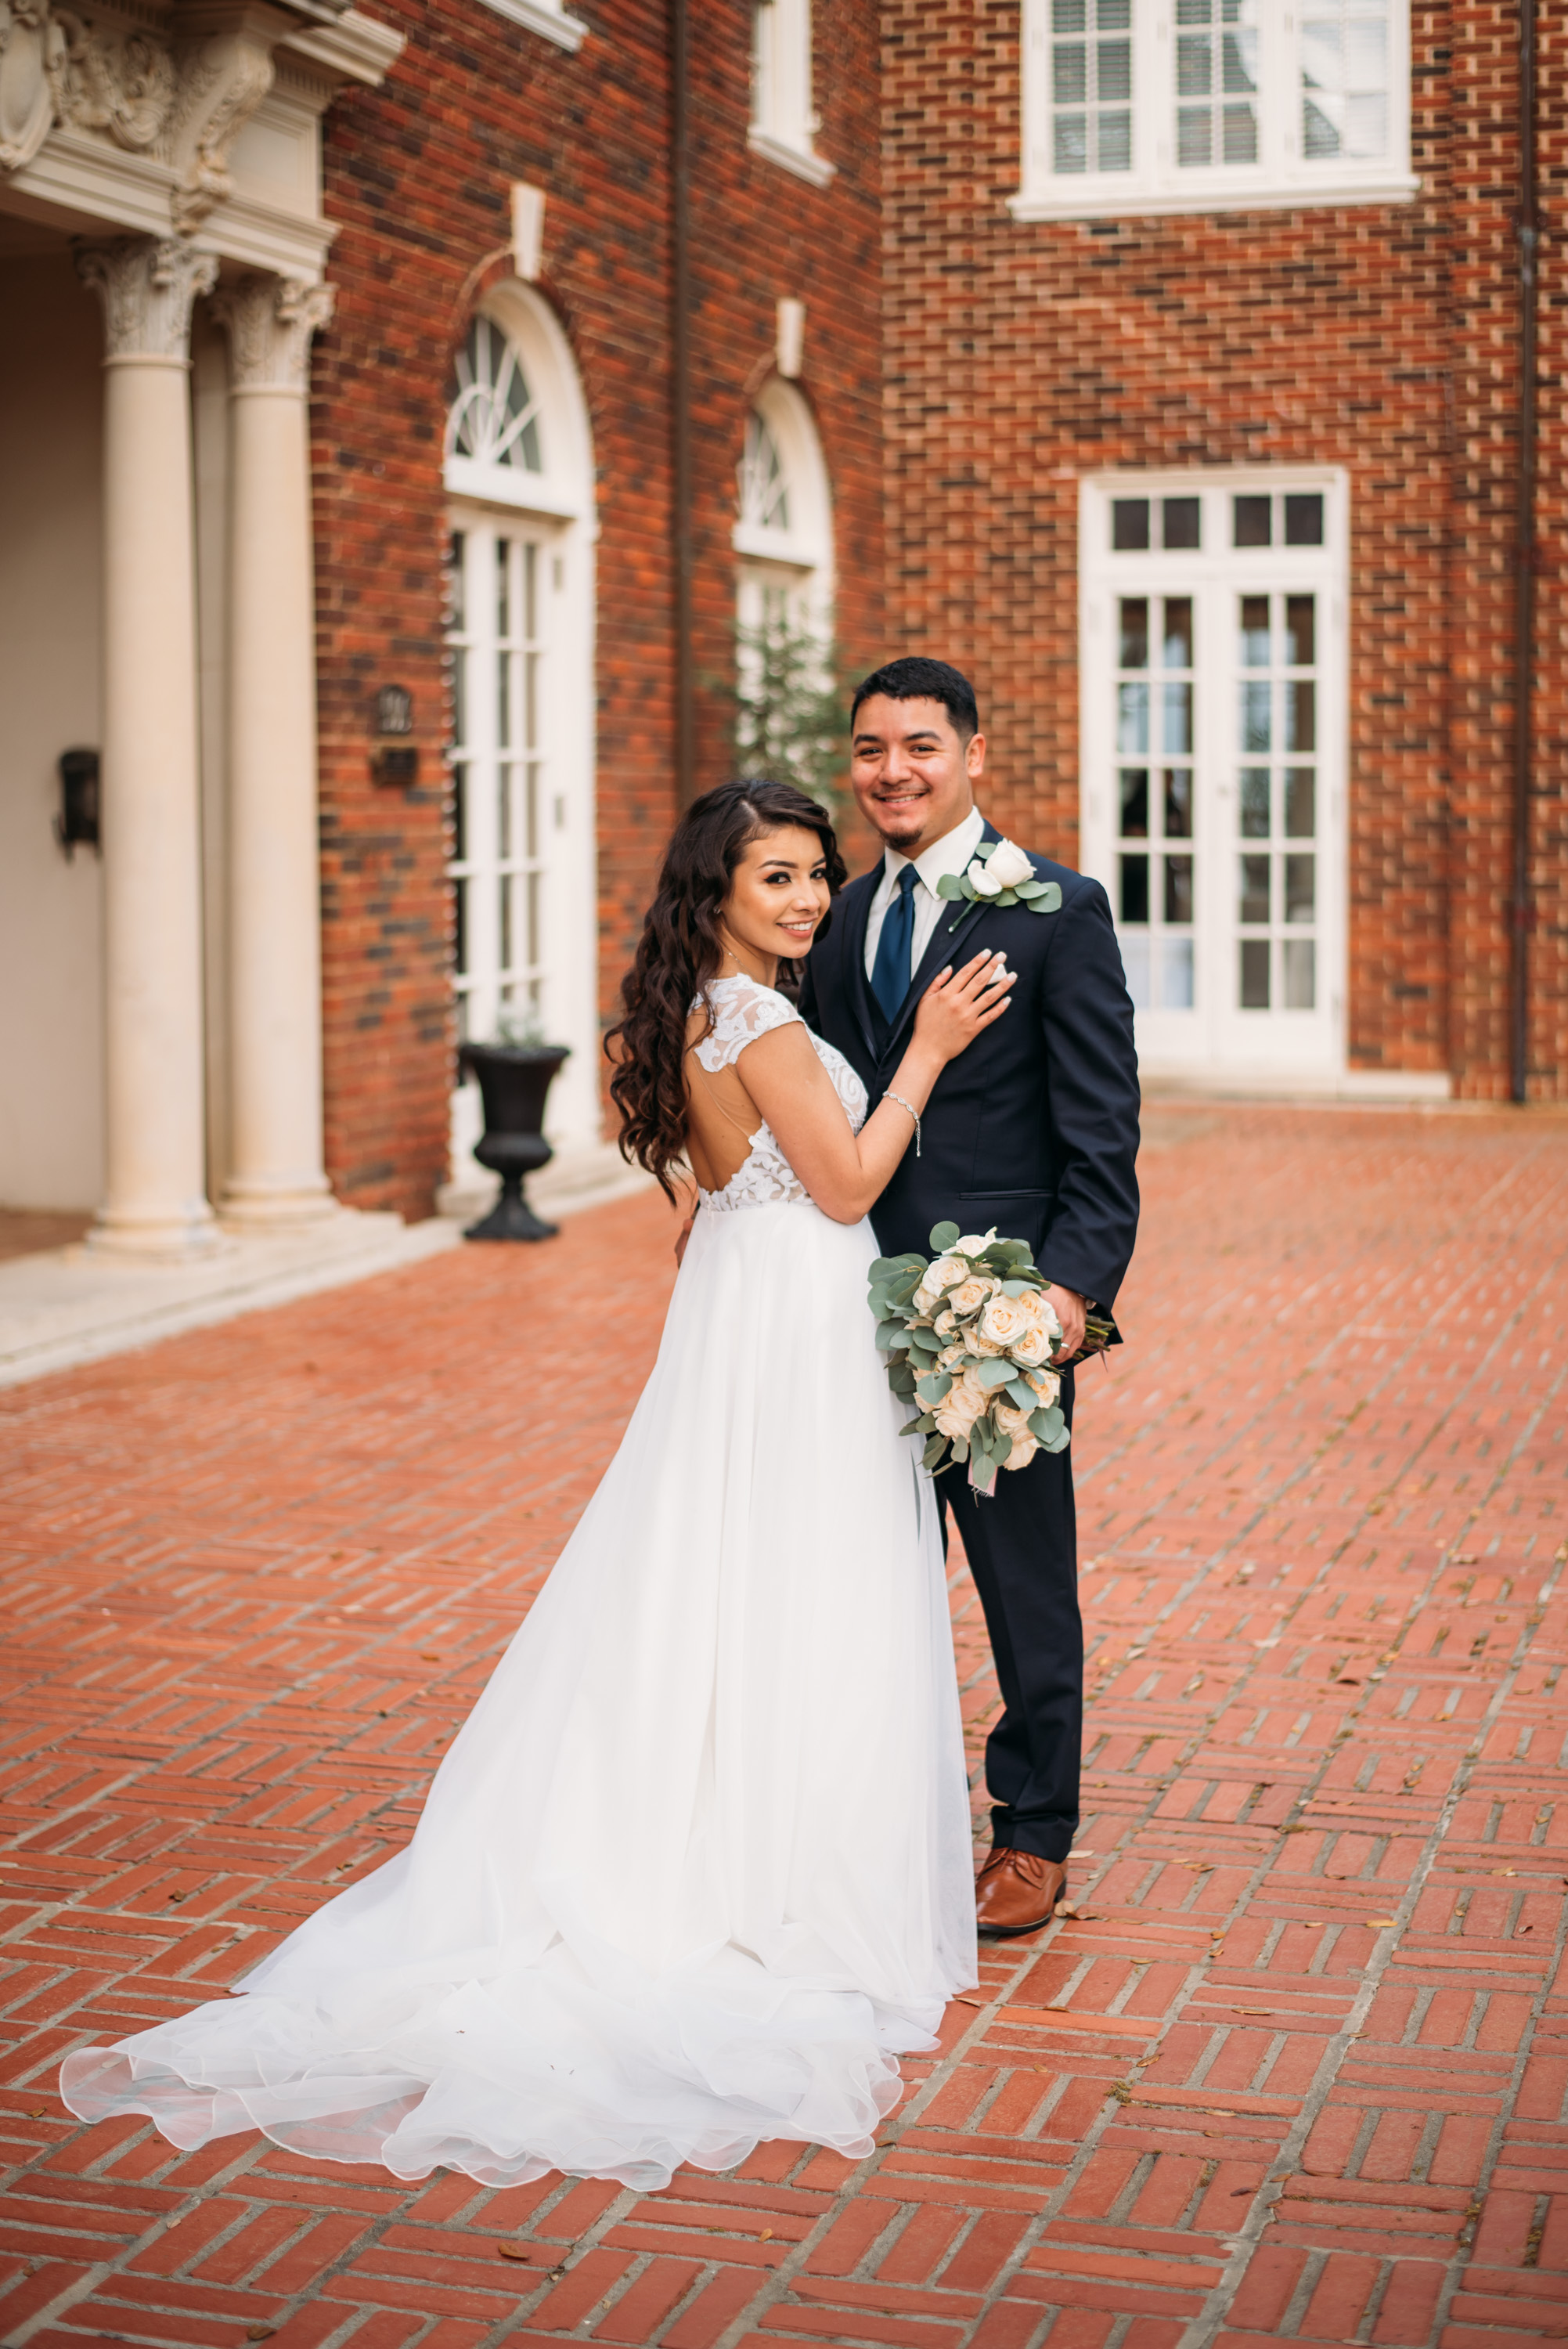 AstinMansion_CollegeStation_WeddingPhotographer045.jpg